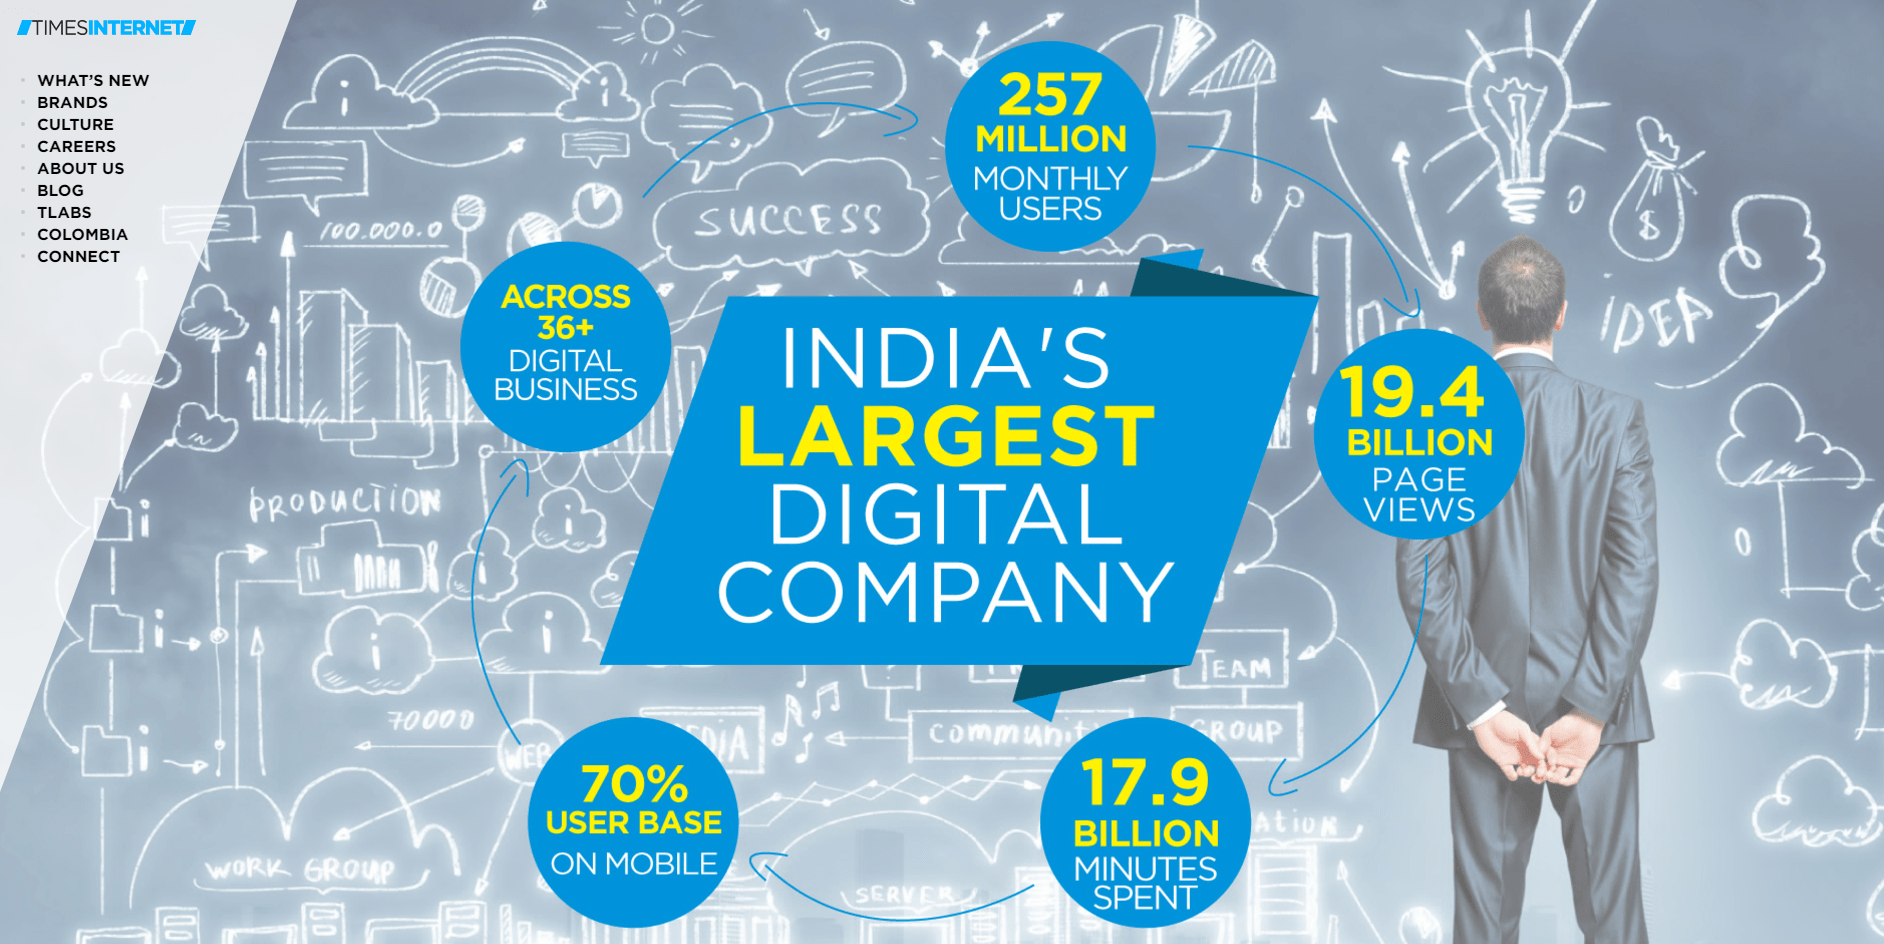 Where The Top 10 Corporate Investors In India Tech Are Placing Bets